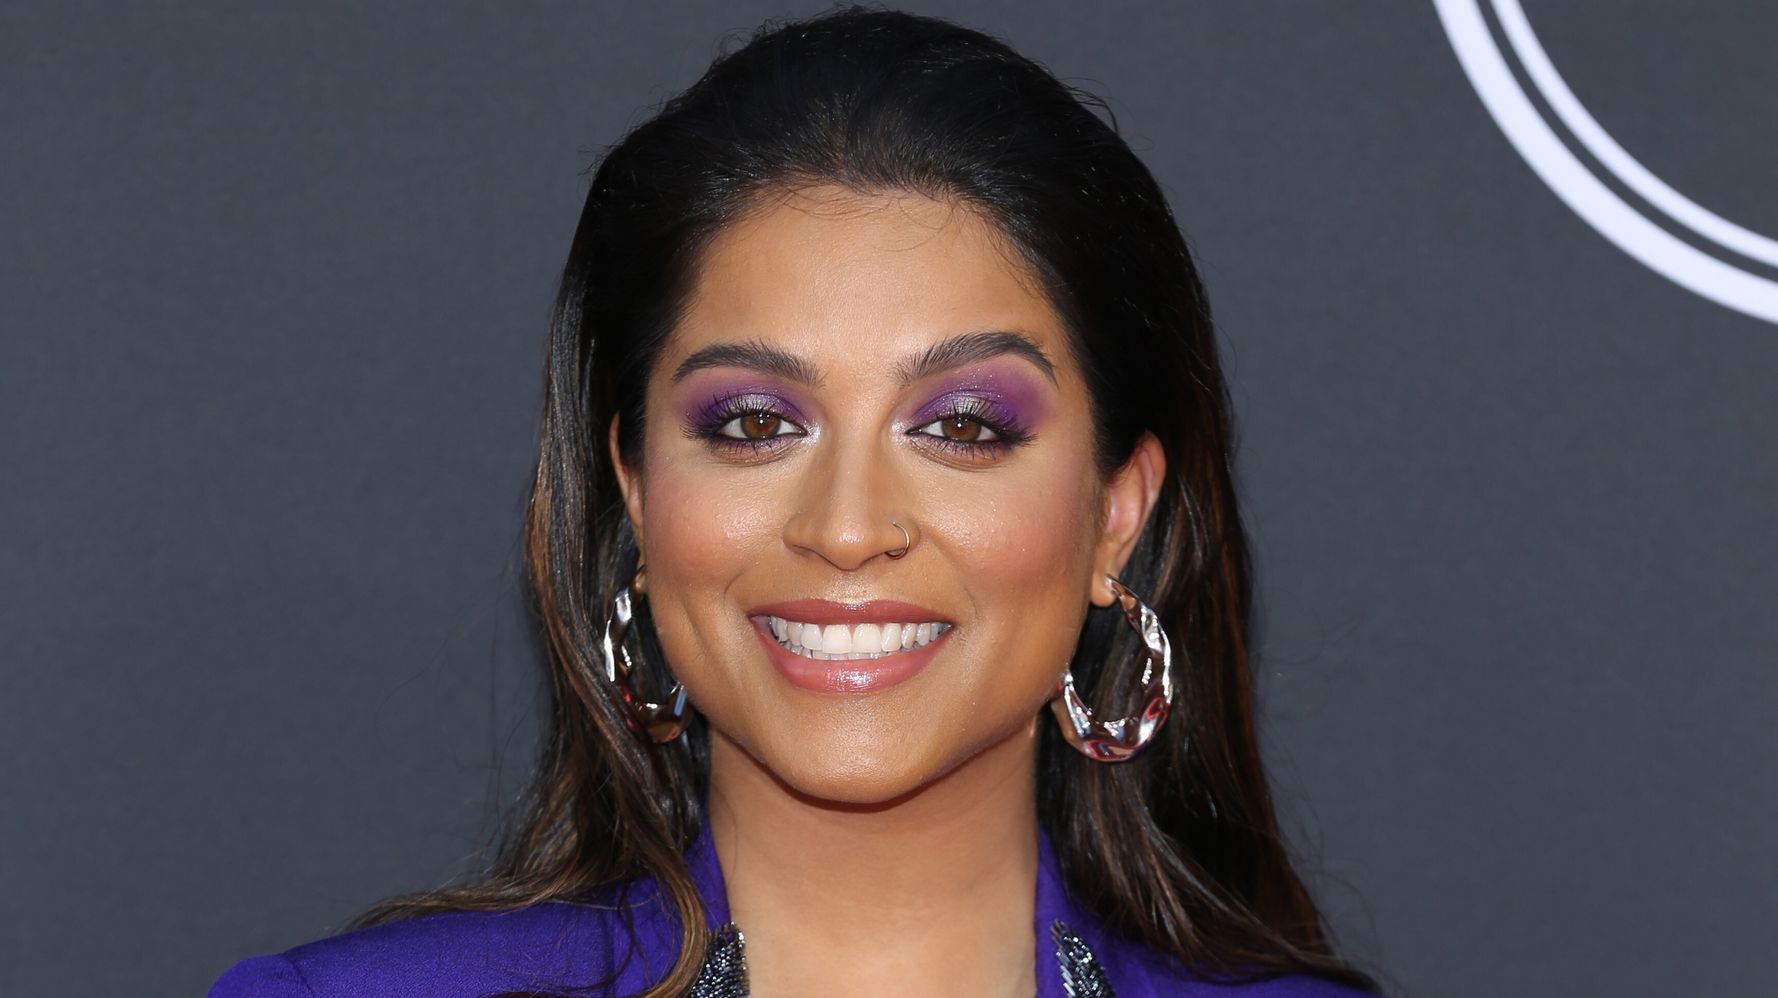 Westlake Legal Group 5d727ffd3b00008a65d0c046 Lilly Singh: 'Coming Out Was One Of The Scariest Experiences Of My Life'